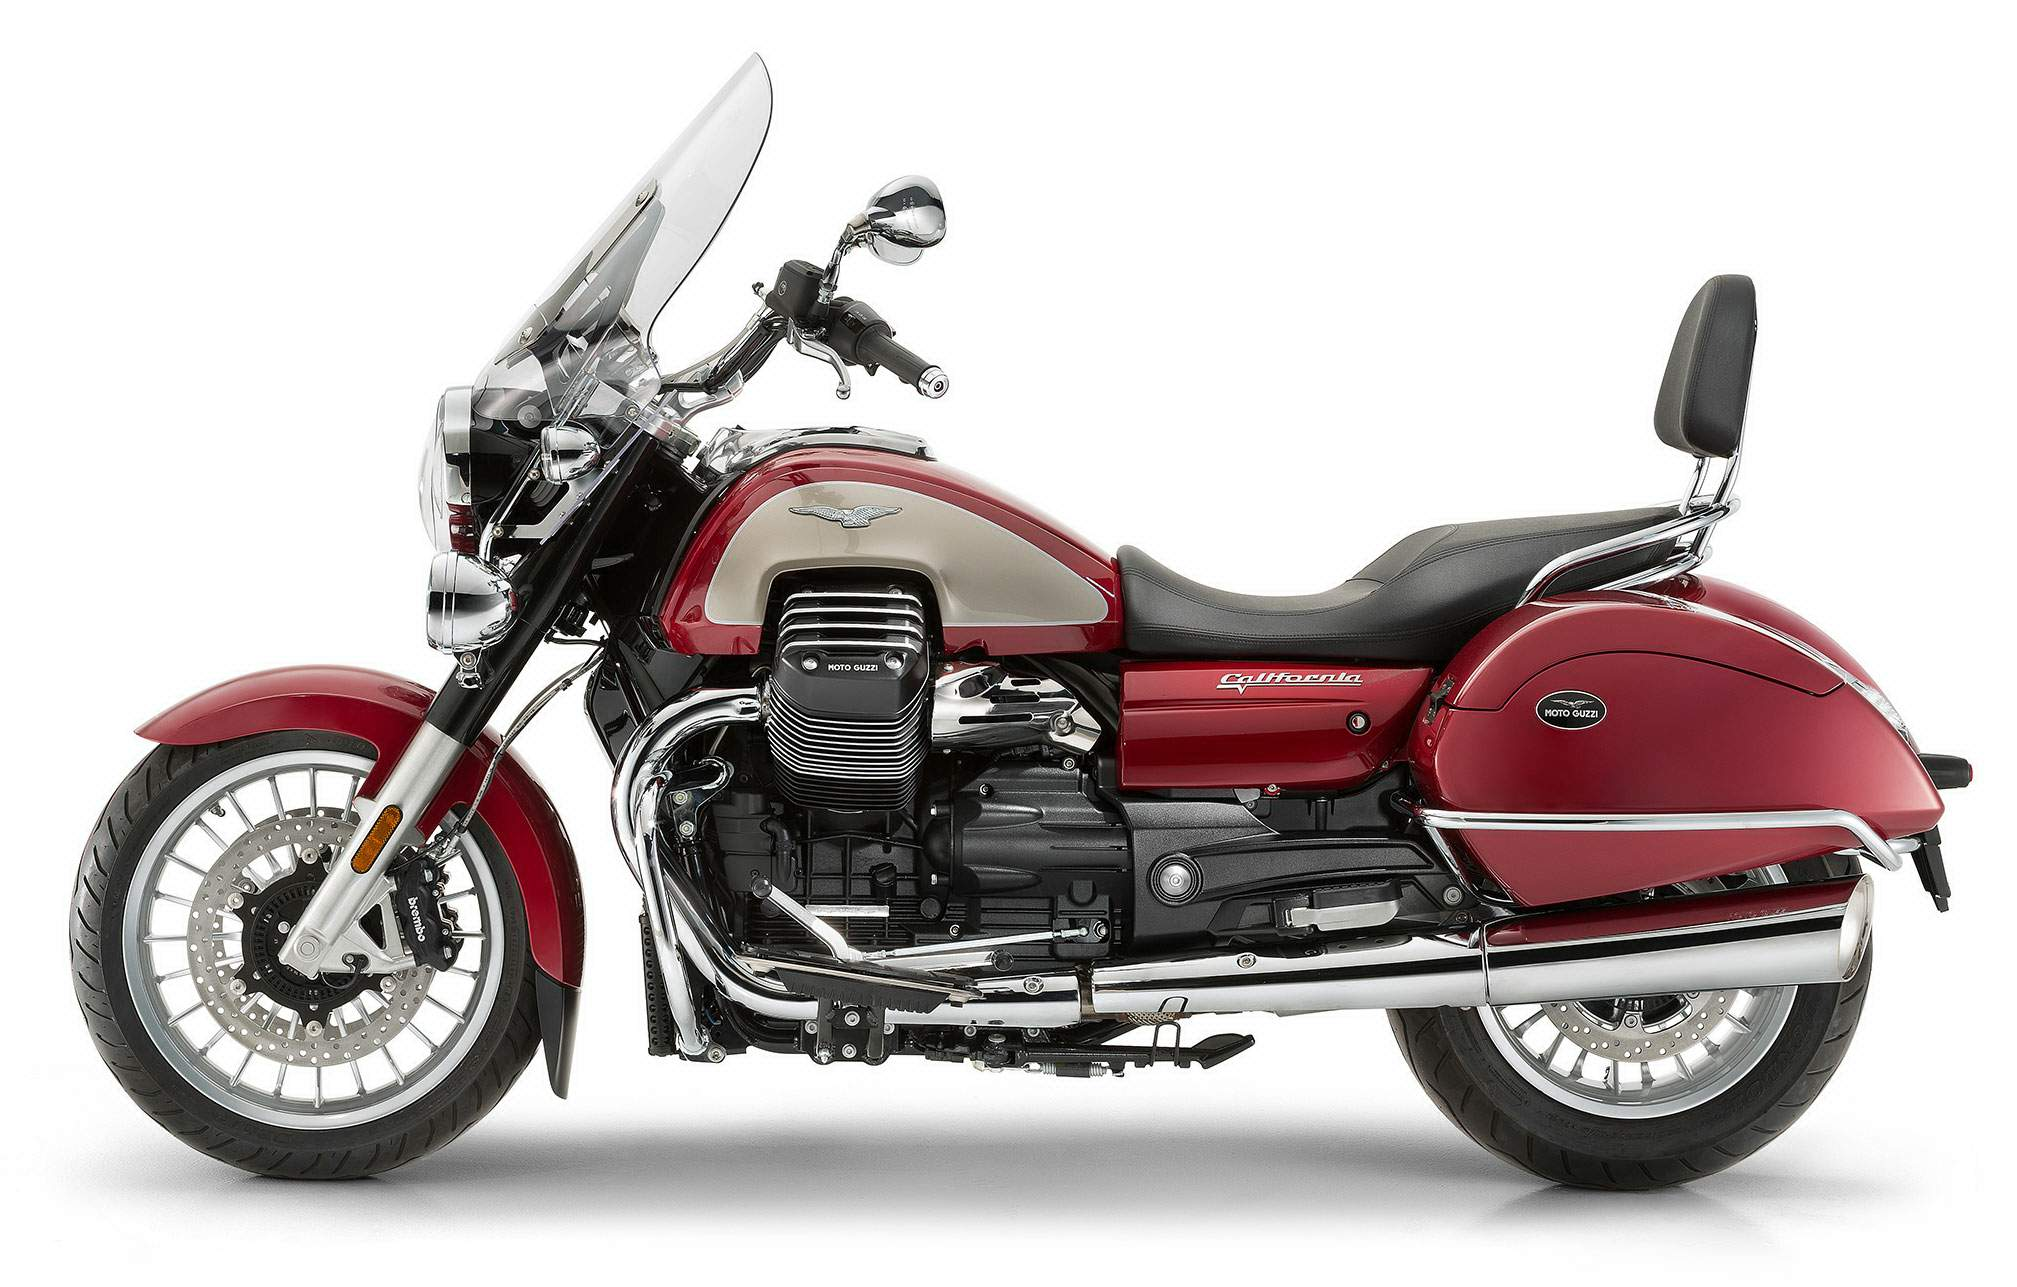 Мотоцикл Moto Guzzi California 1400 Touring 2017